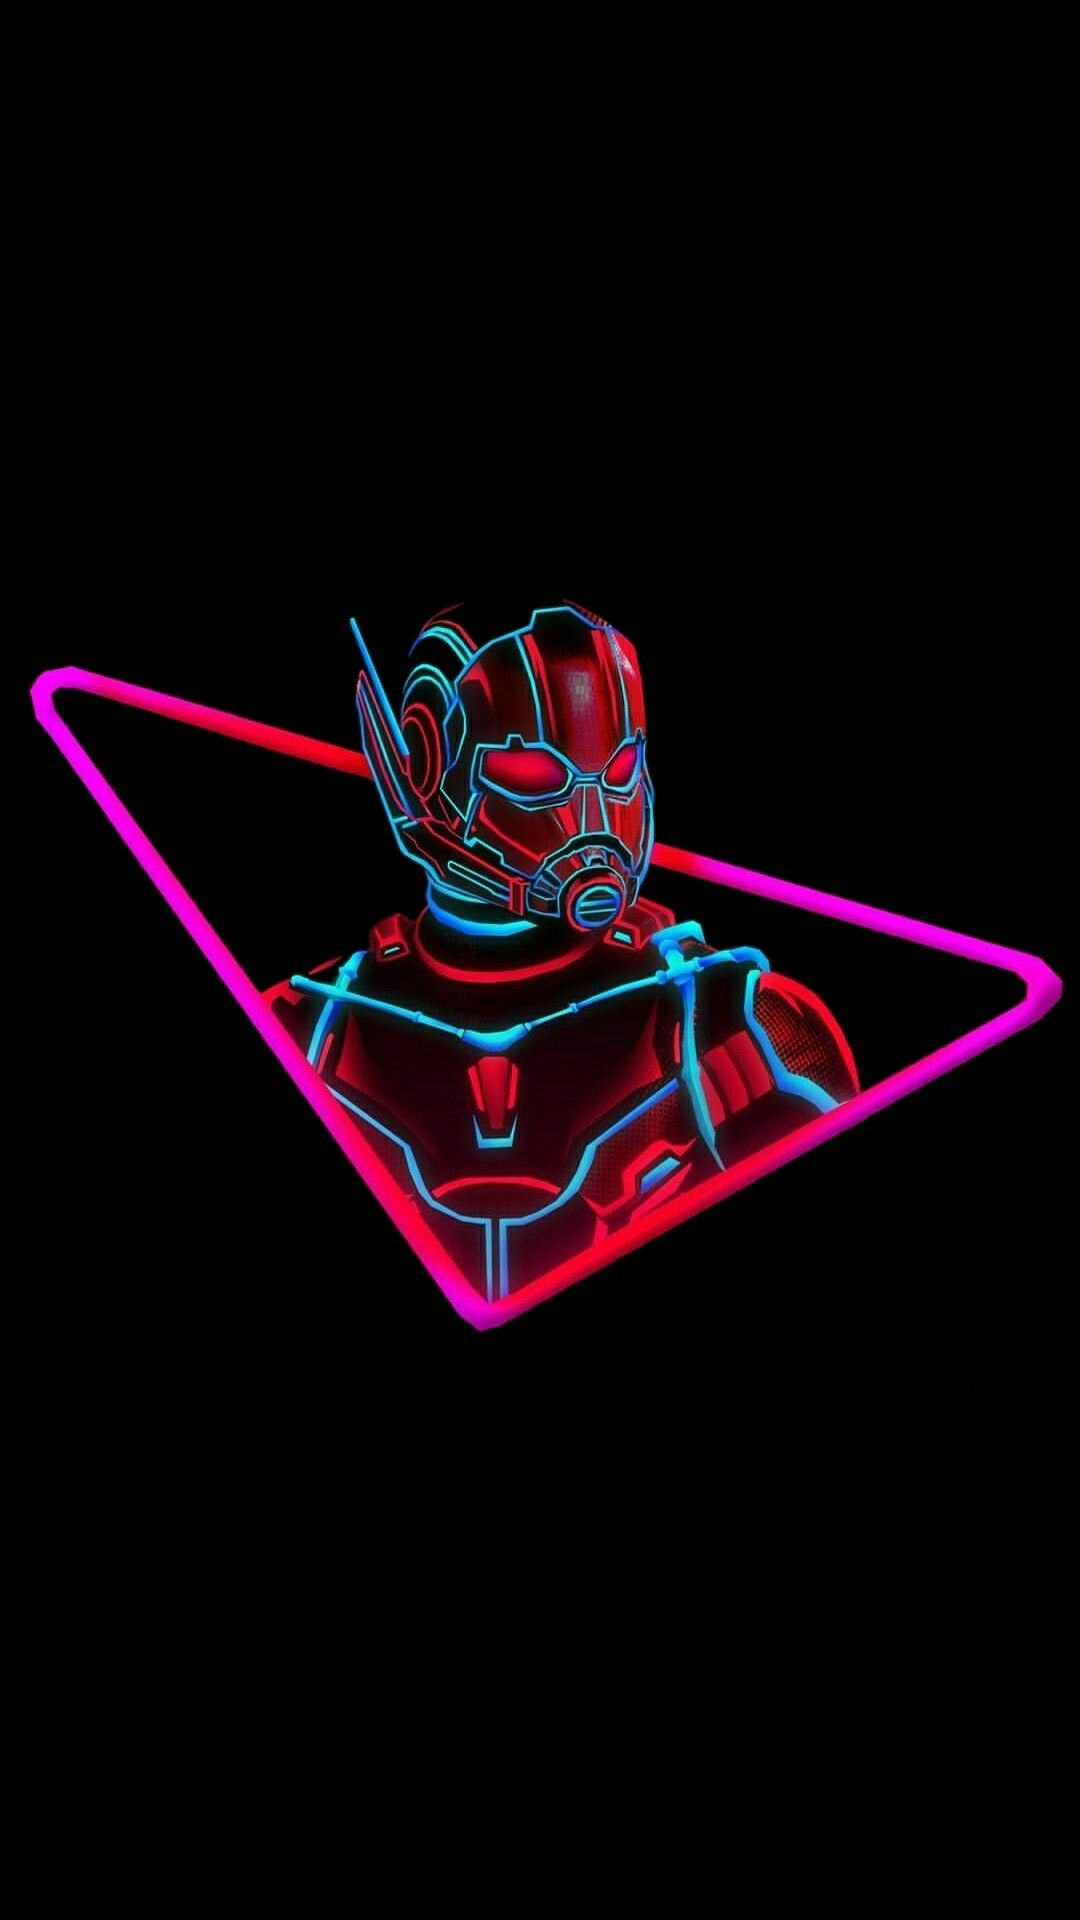 Fast And Furious Iphone 5 Wallpaper Ant Man Neon Iphone Wallpaper Iphone Wallpapers